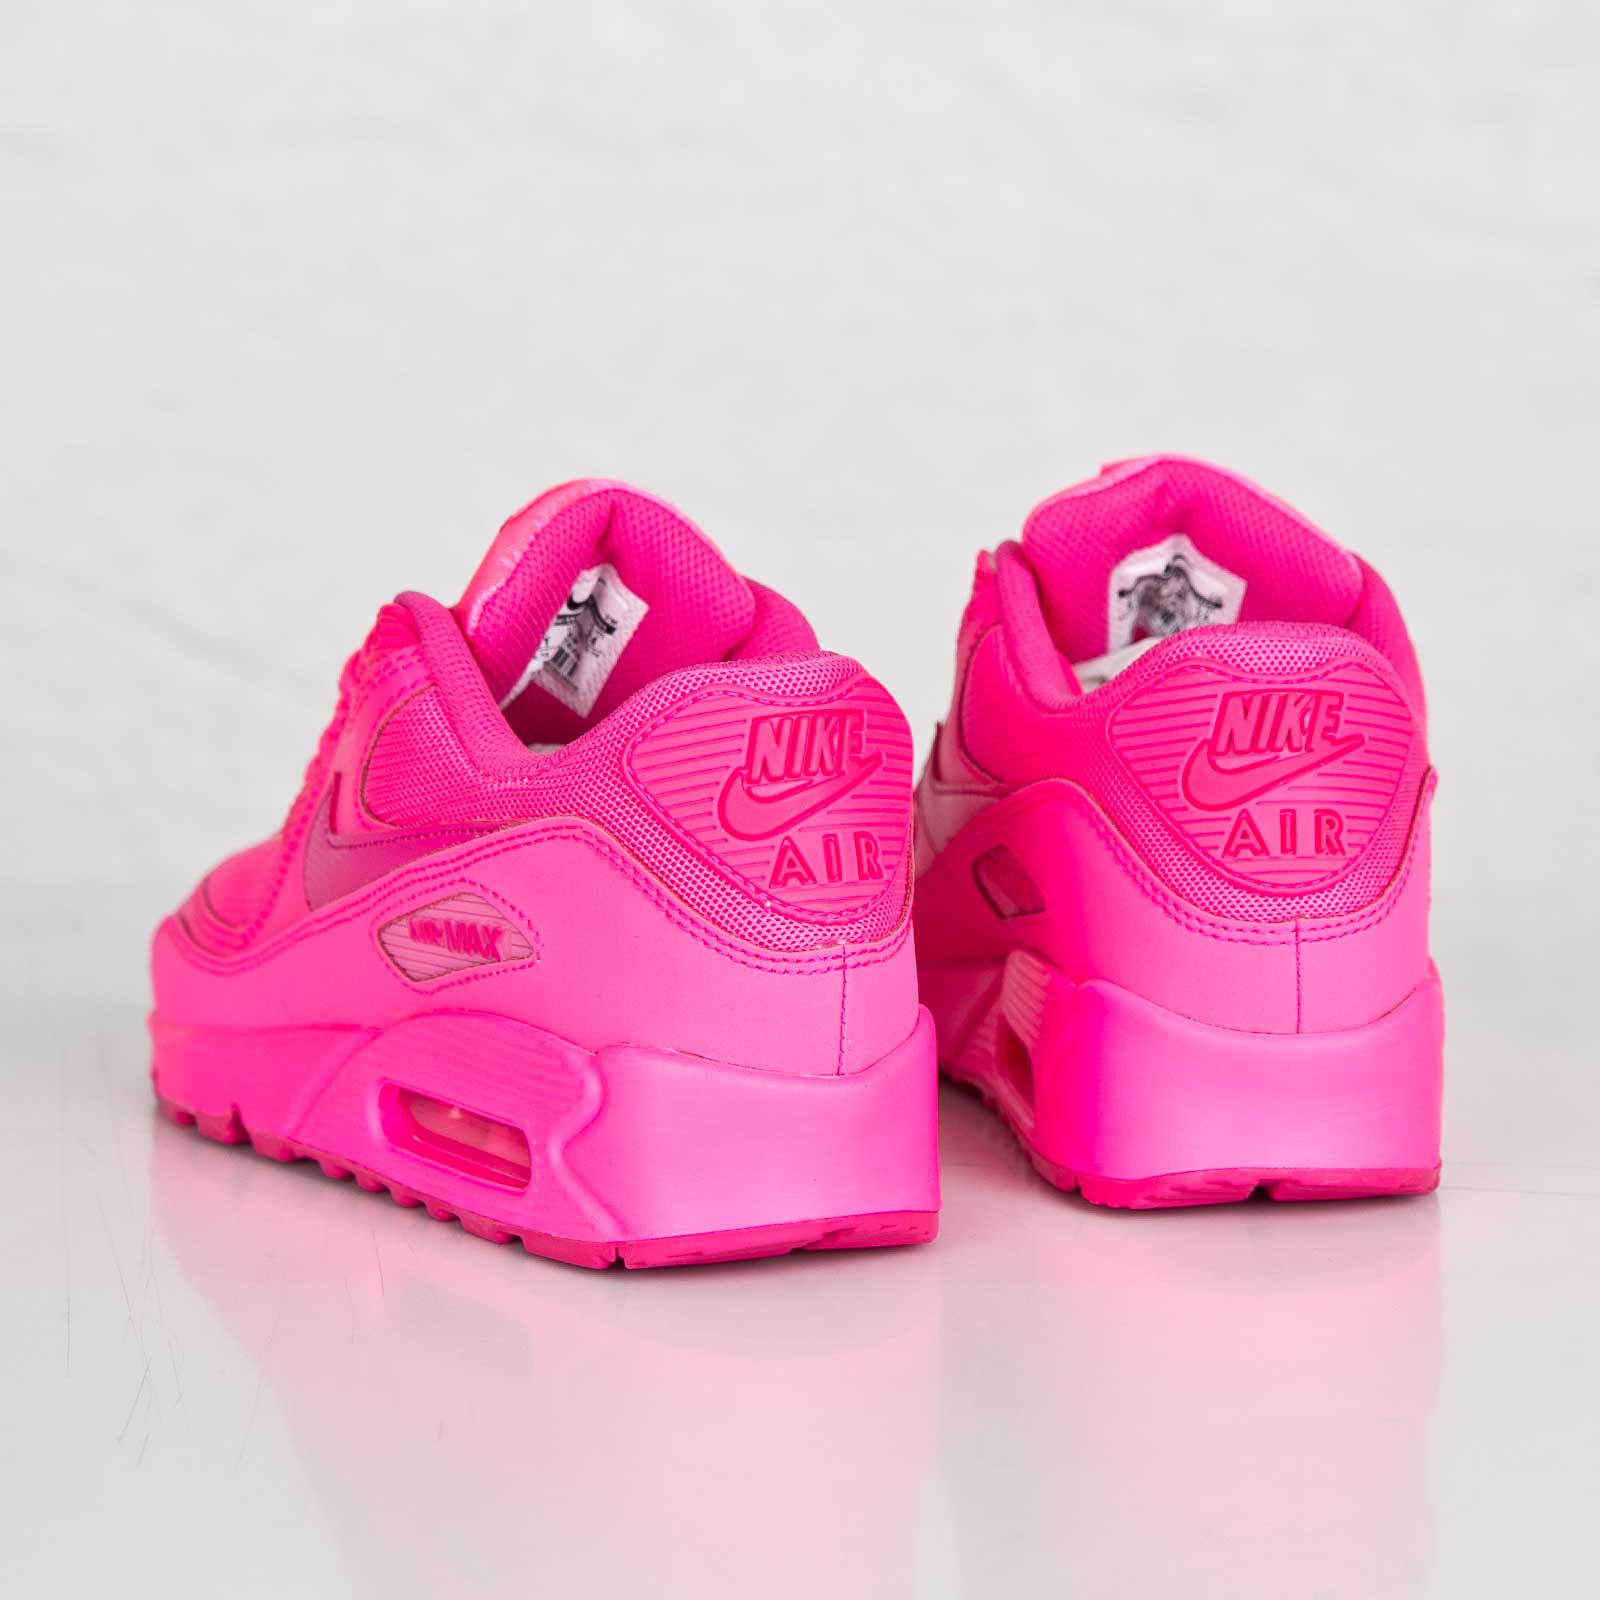 timeless design b392f 5c38f ... hyper pink pow white youths womens shoes 8113d 16c7e  usa nike air max  90 2007 gs 76875 4f4ee